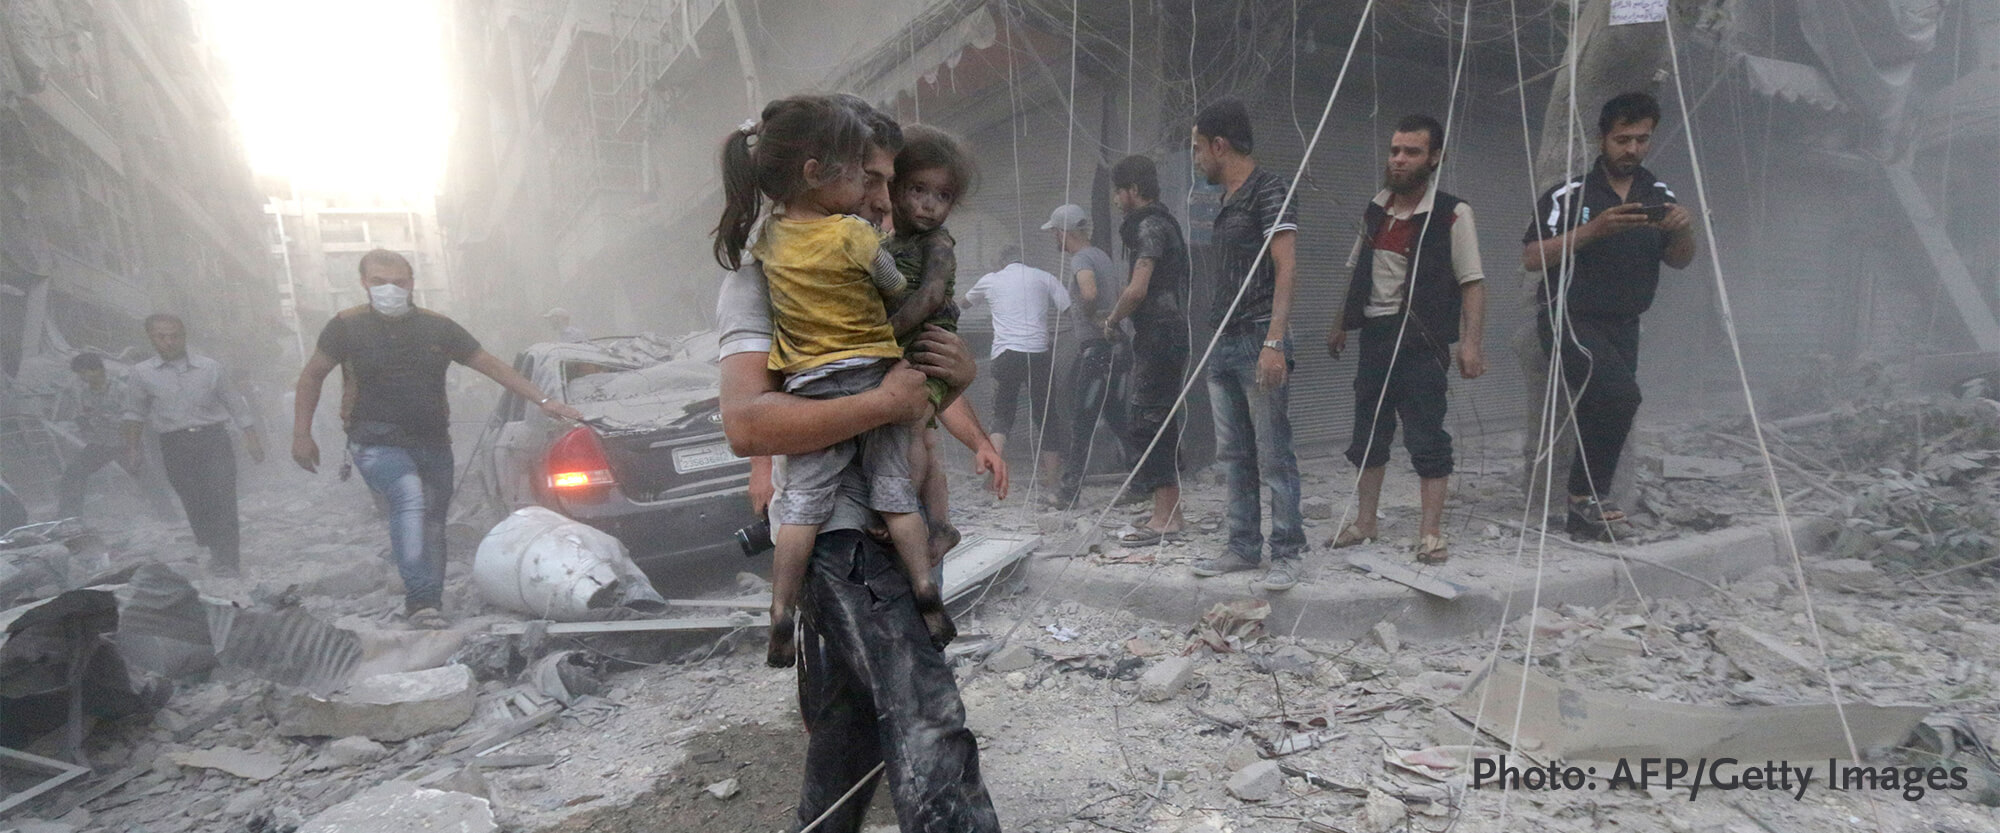 Syrian man carrying child through building rubble in Syria